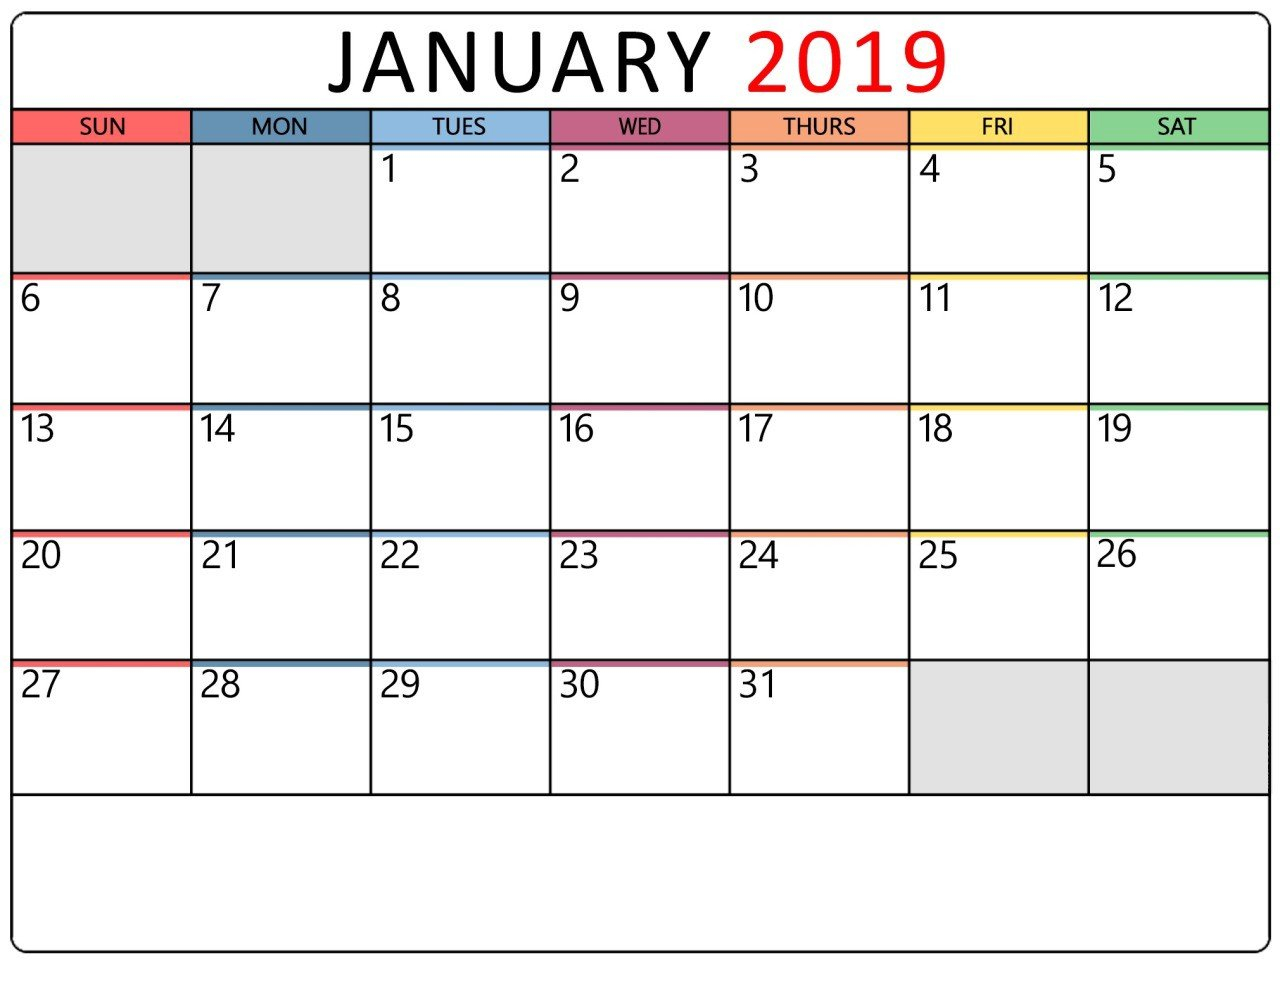 January 2019 Calendar Printable Templates - January Calendar - Medium Calendar 2019 Themes